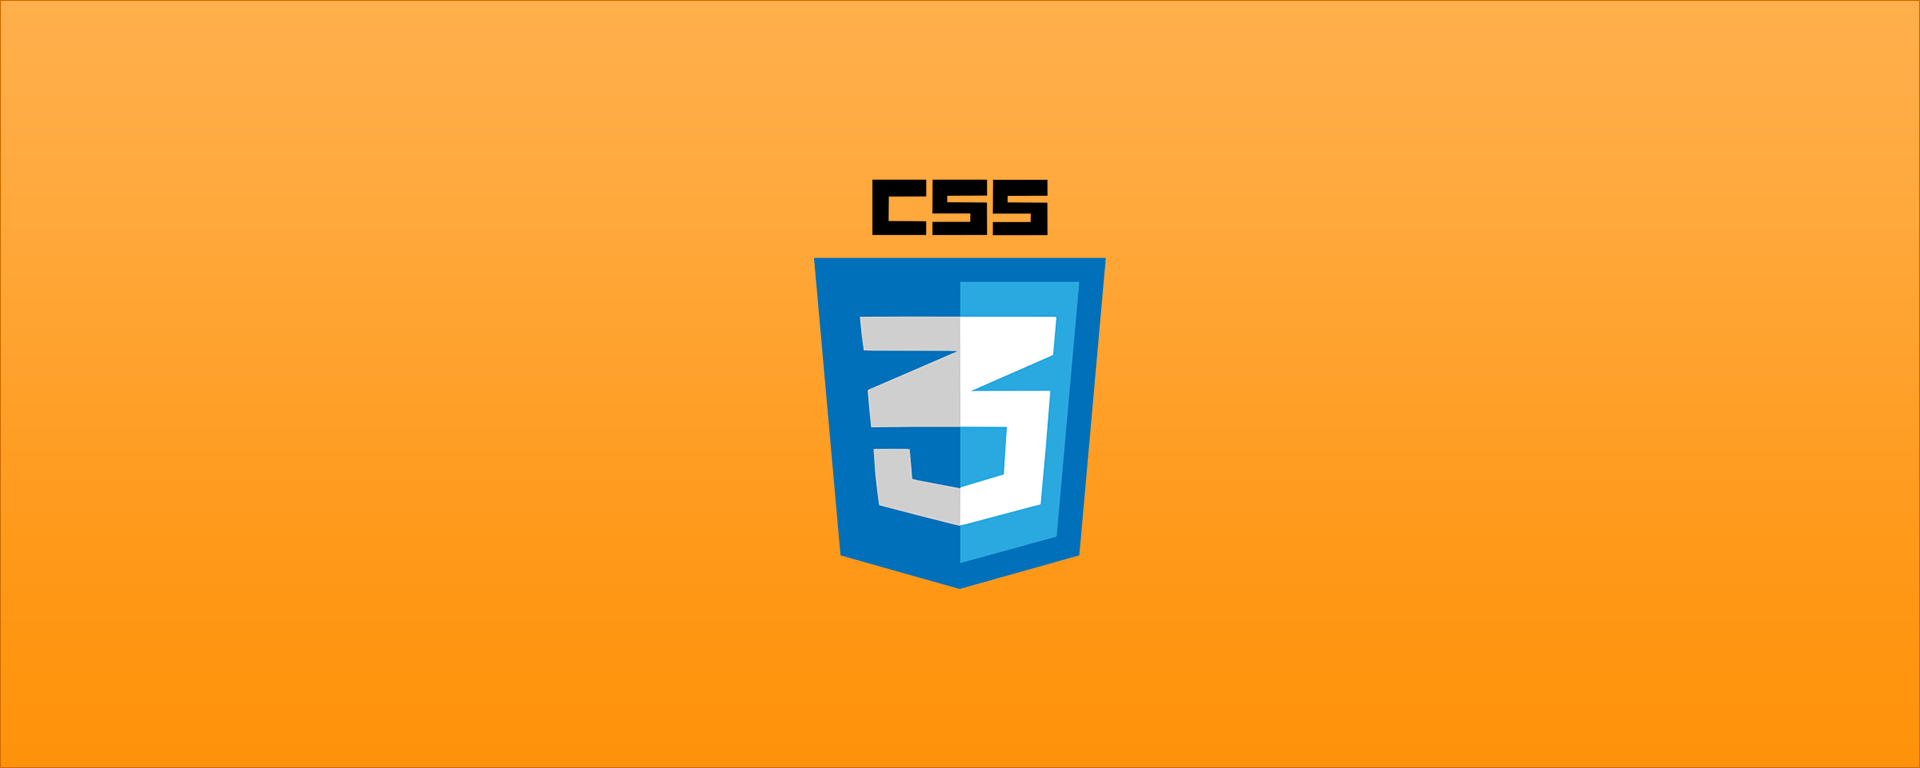 Layout Moderno: simple y limpio con CSS